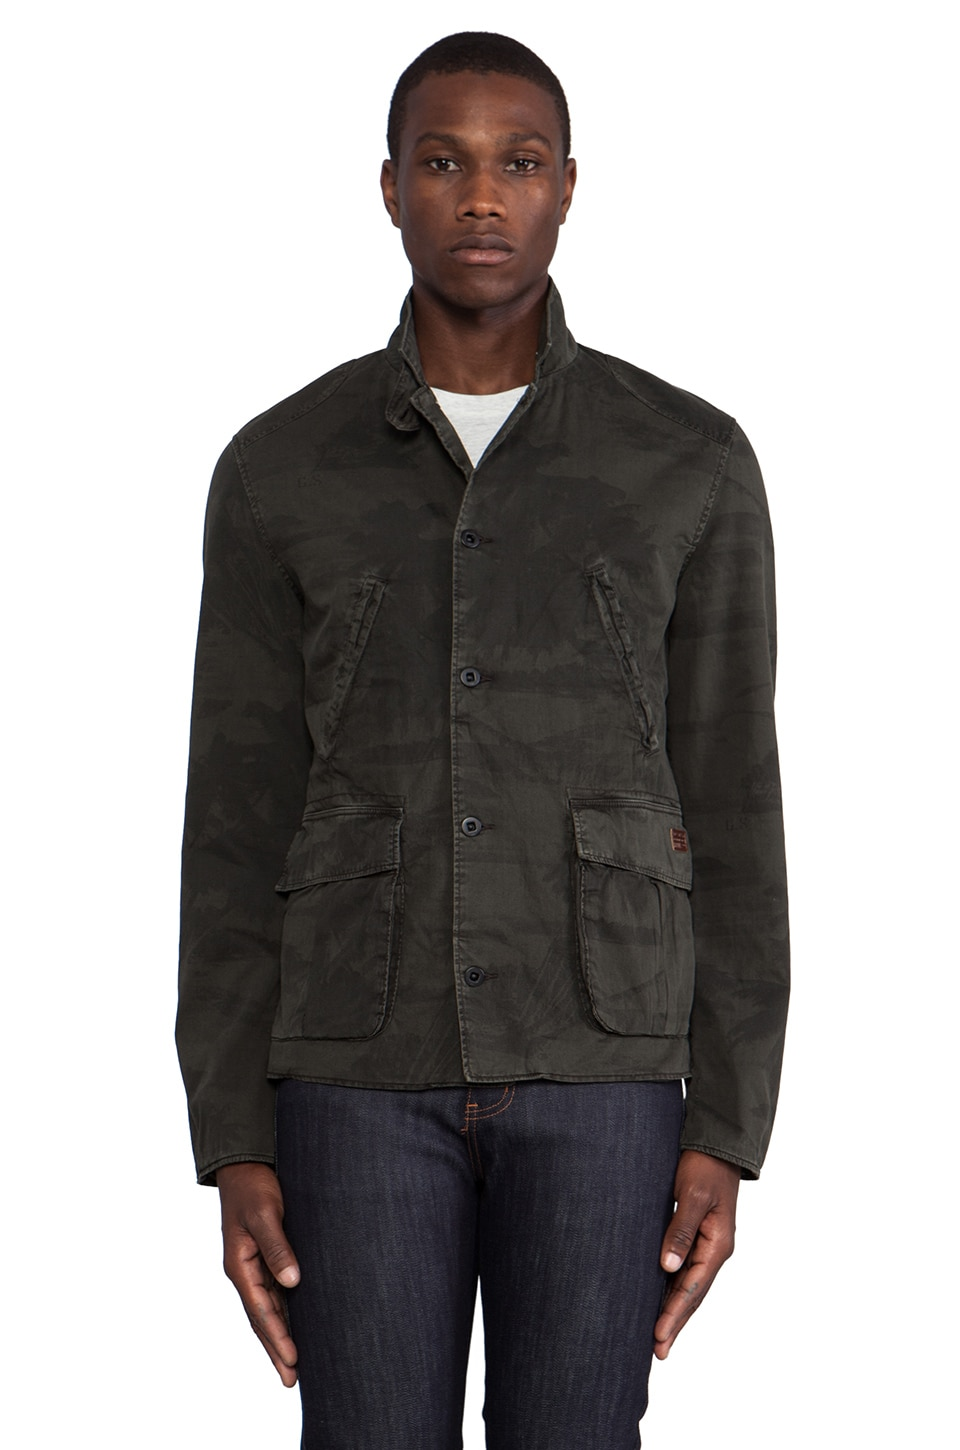 G-Star Norris Palm Blazer in Dark Combat